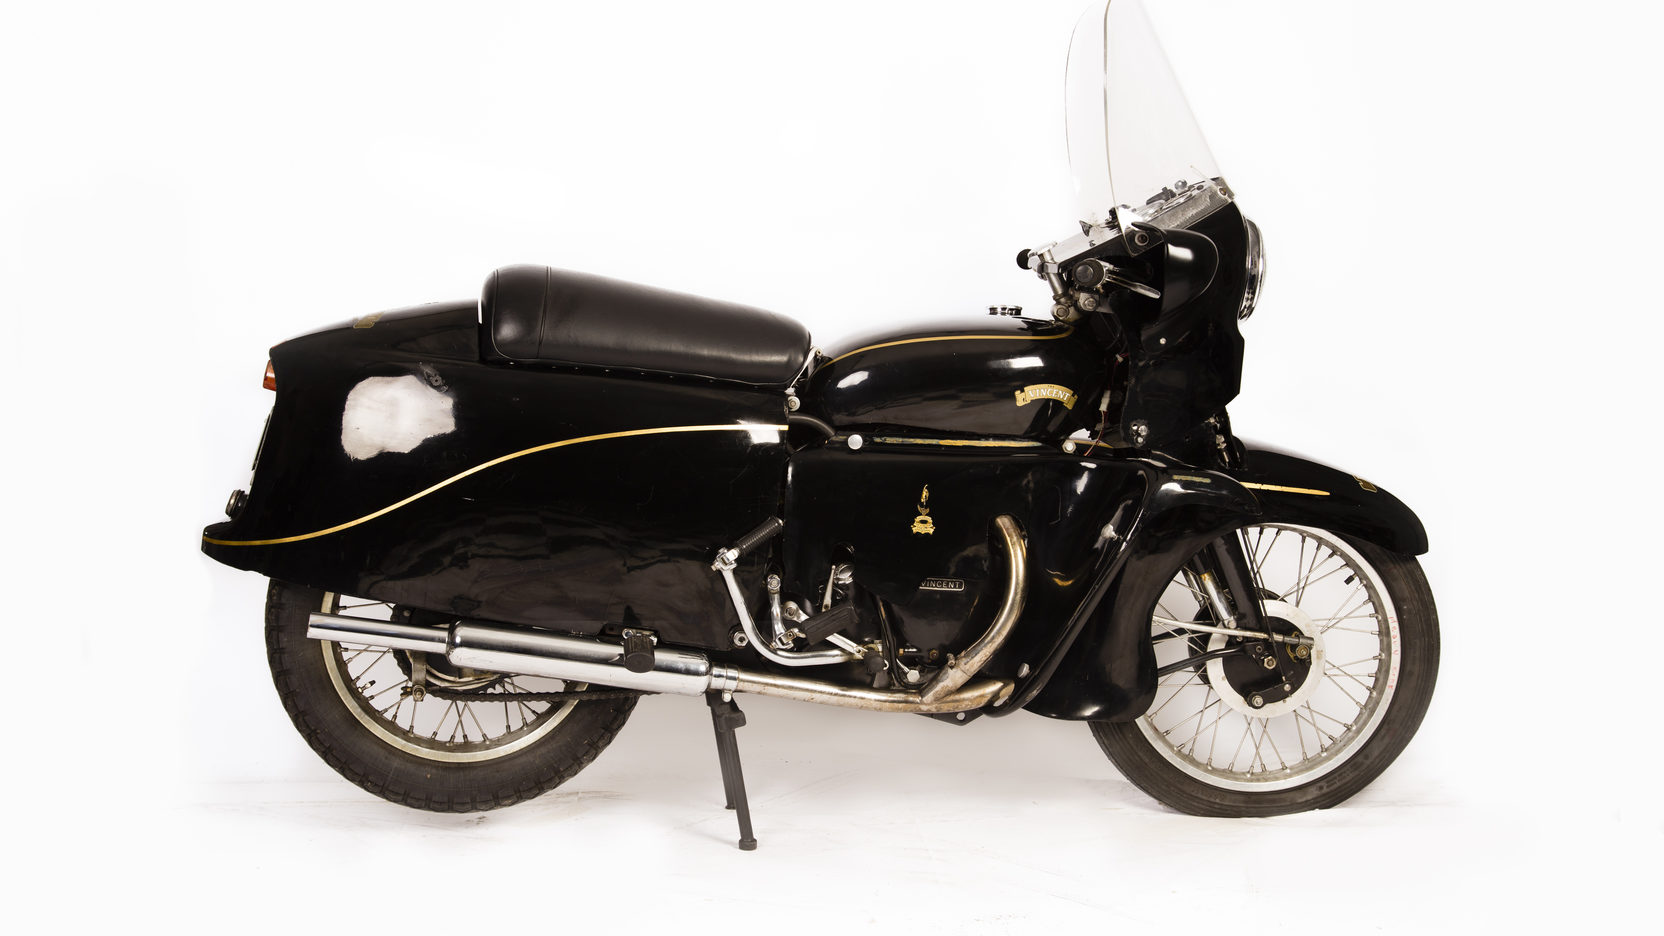 The Vincent Black Prince looks suspiciously like a police motorcycle and this may have been Phil Vincent's thinking.